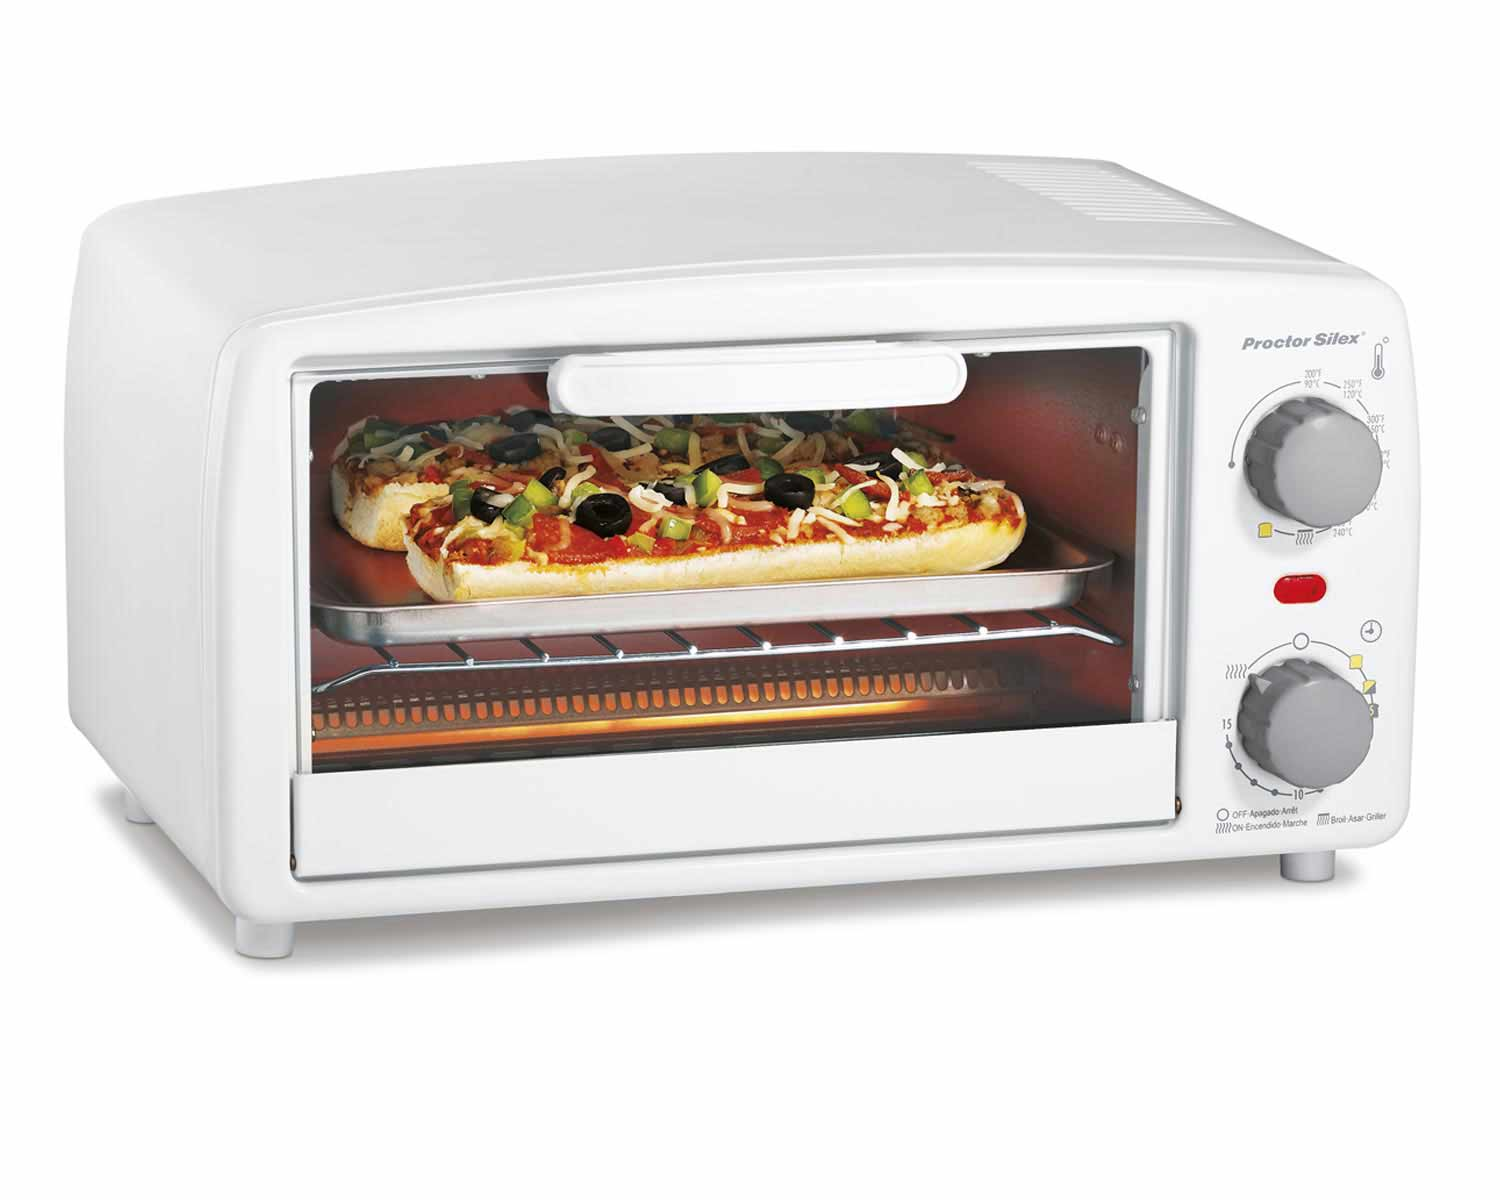 home dp kitchen uk countertop amazon foot rotisserie beach hamilton co with toaster oven cubic large convection